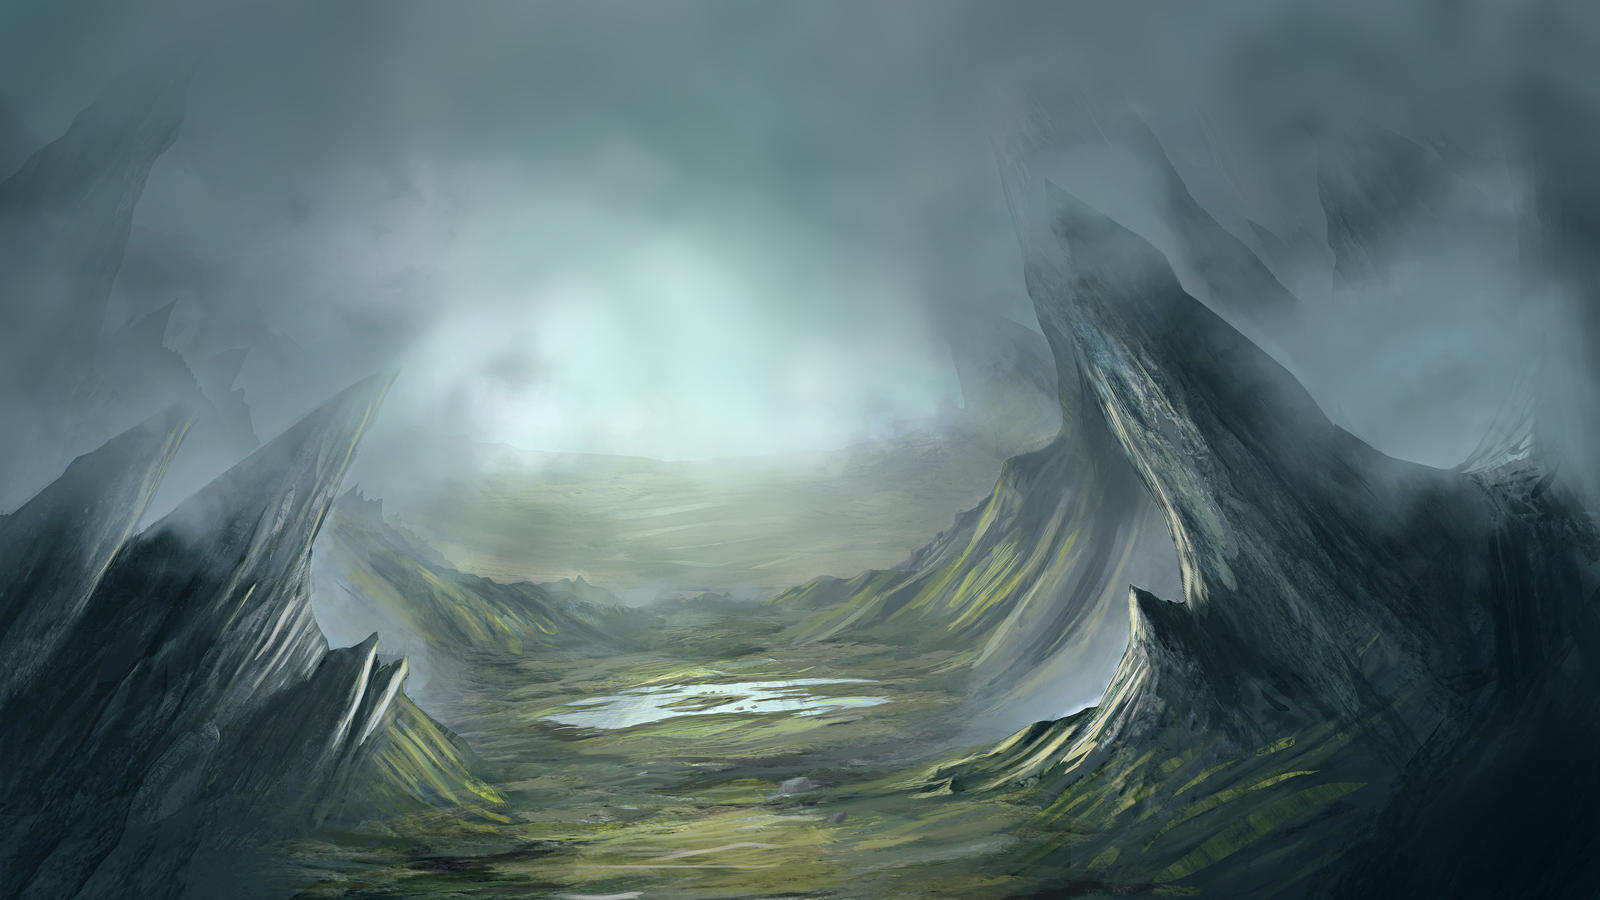 Drawings of Fantasy Landscapes images